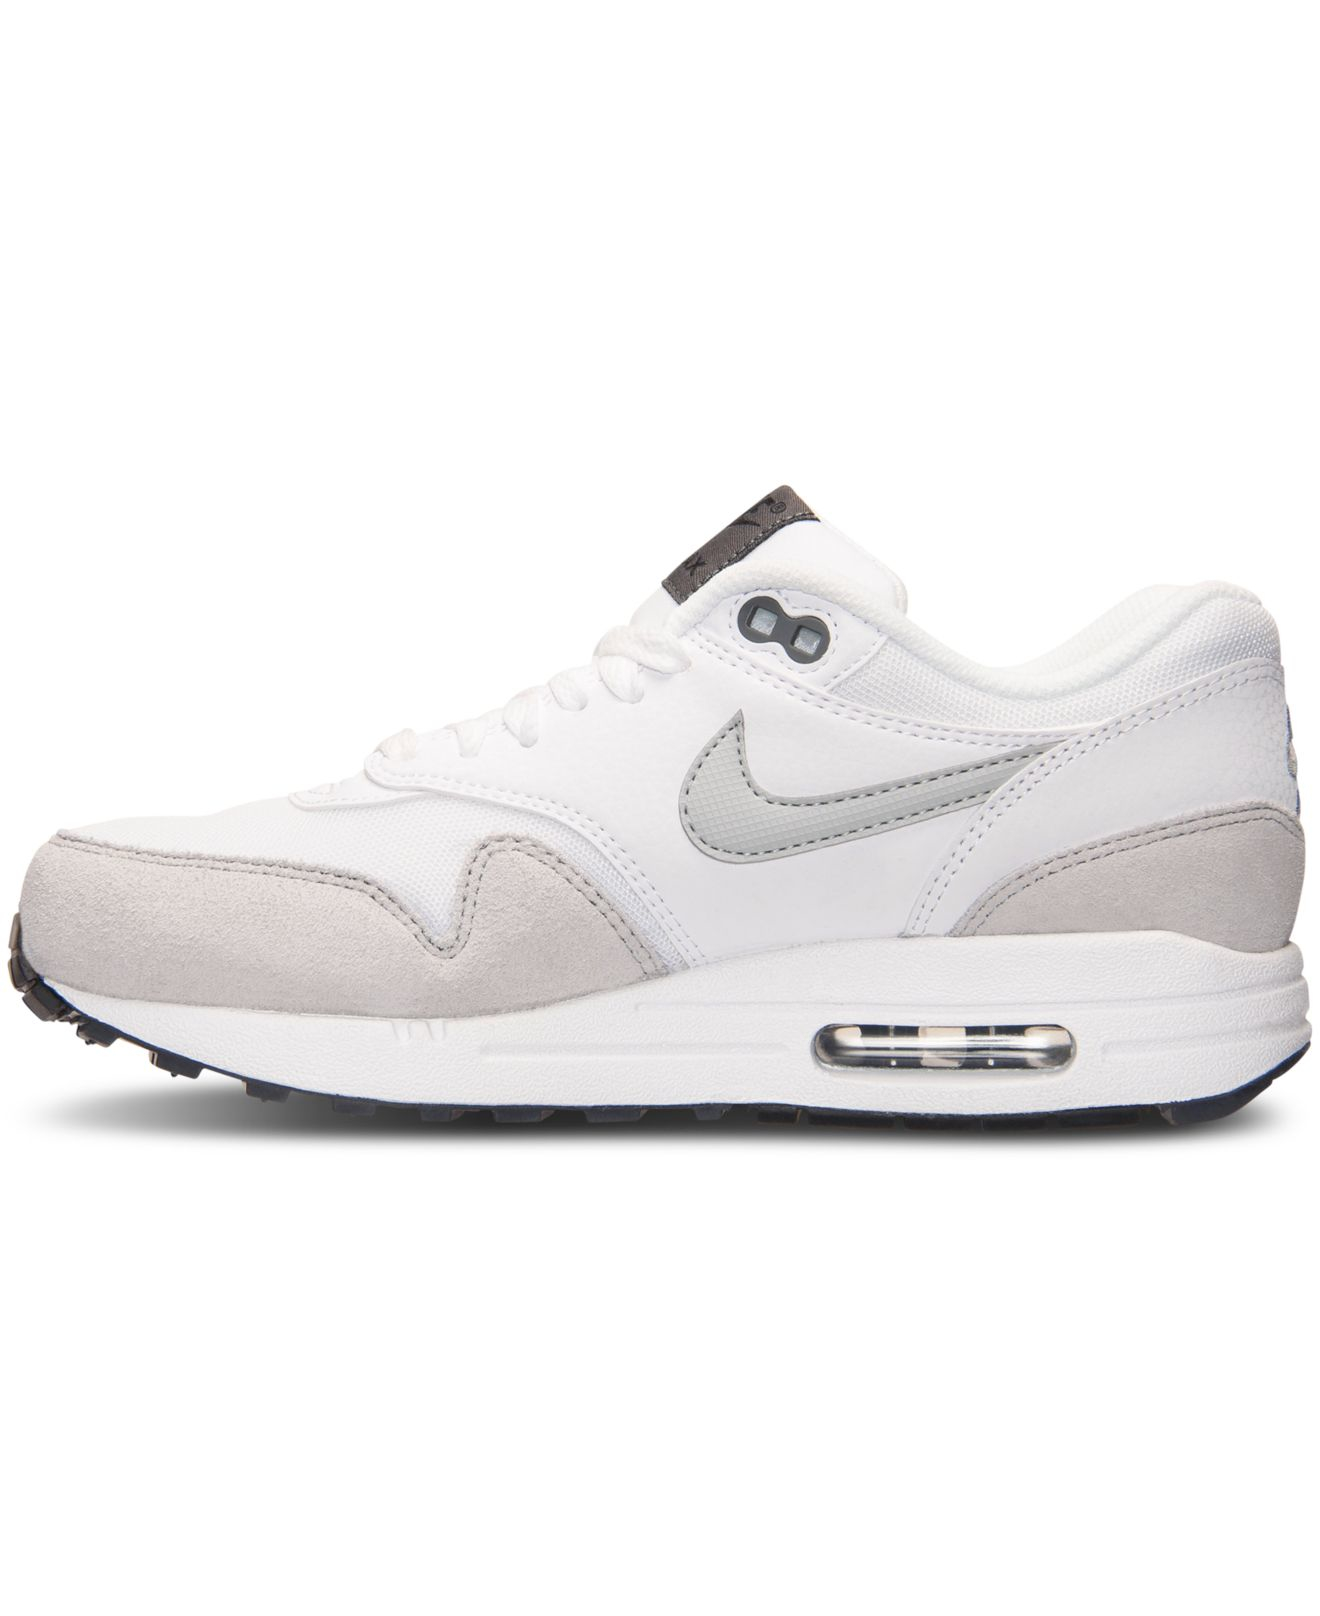 finest selection 02013 b42e2 ... usa lyst nike womens air max 1 essential running sneakers from finish  line in white 78d7d